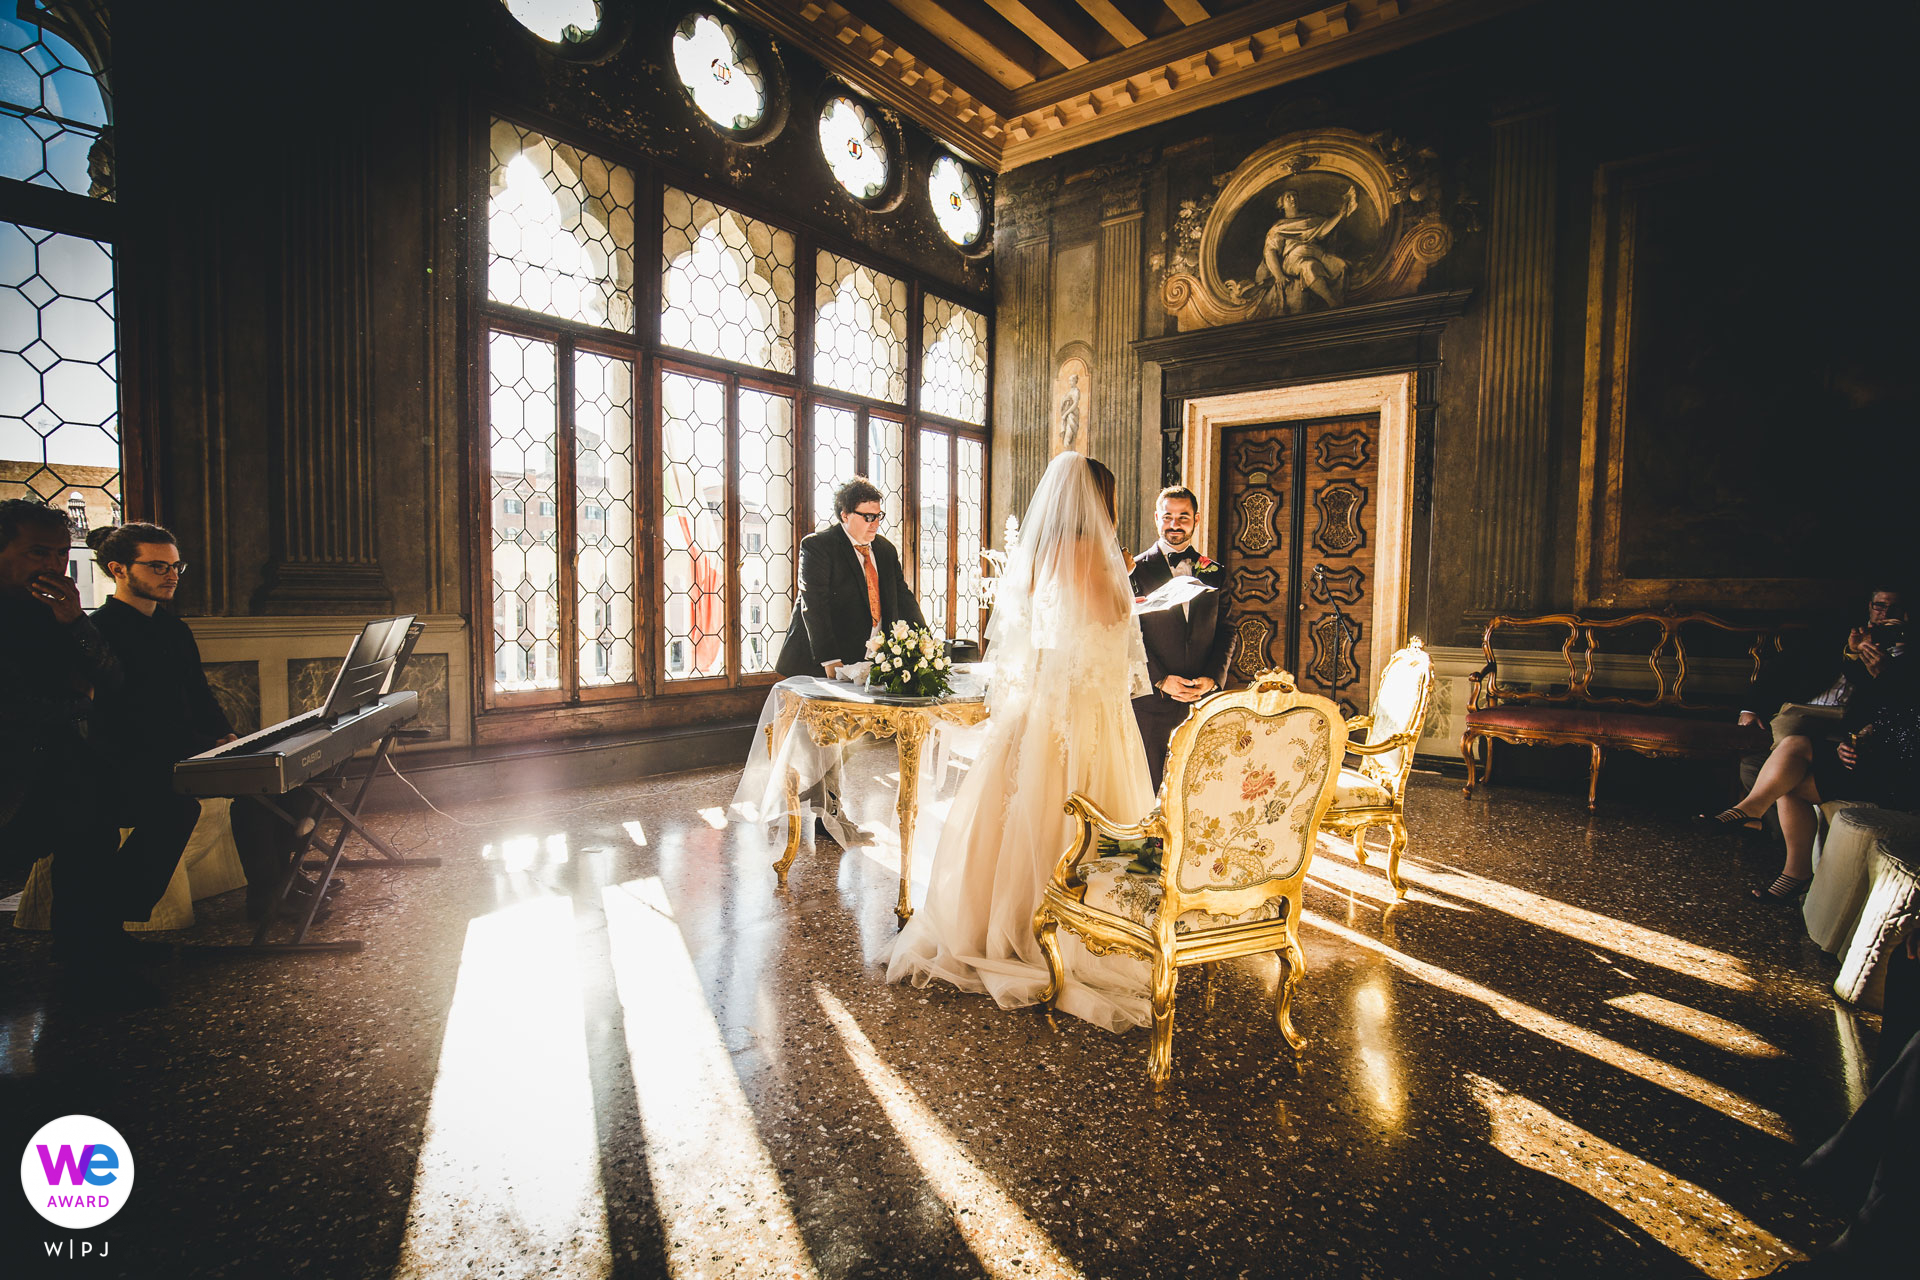 Venice Wedding Photographer at Luxurious Ca Sagredo Venue | The bride and groom take their vows in an elegant, sunlit room